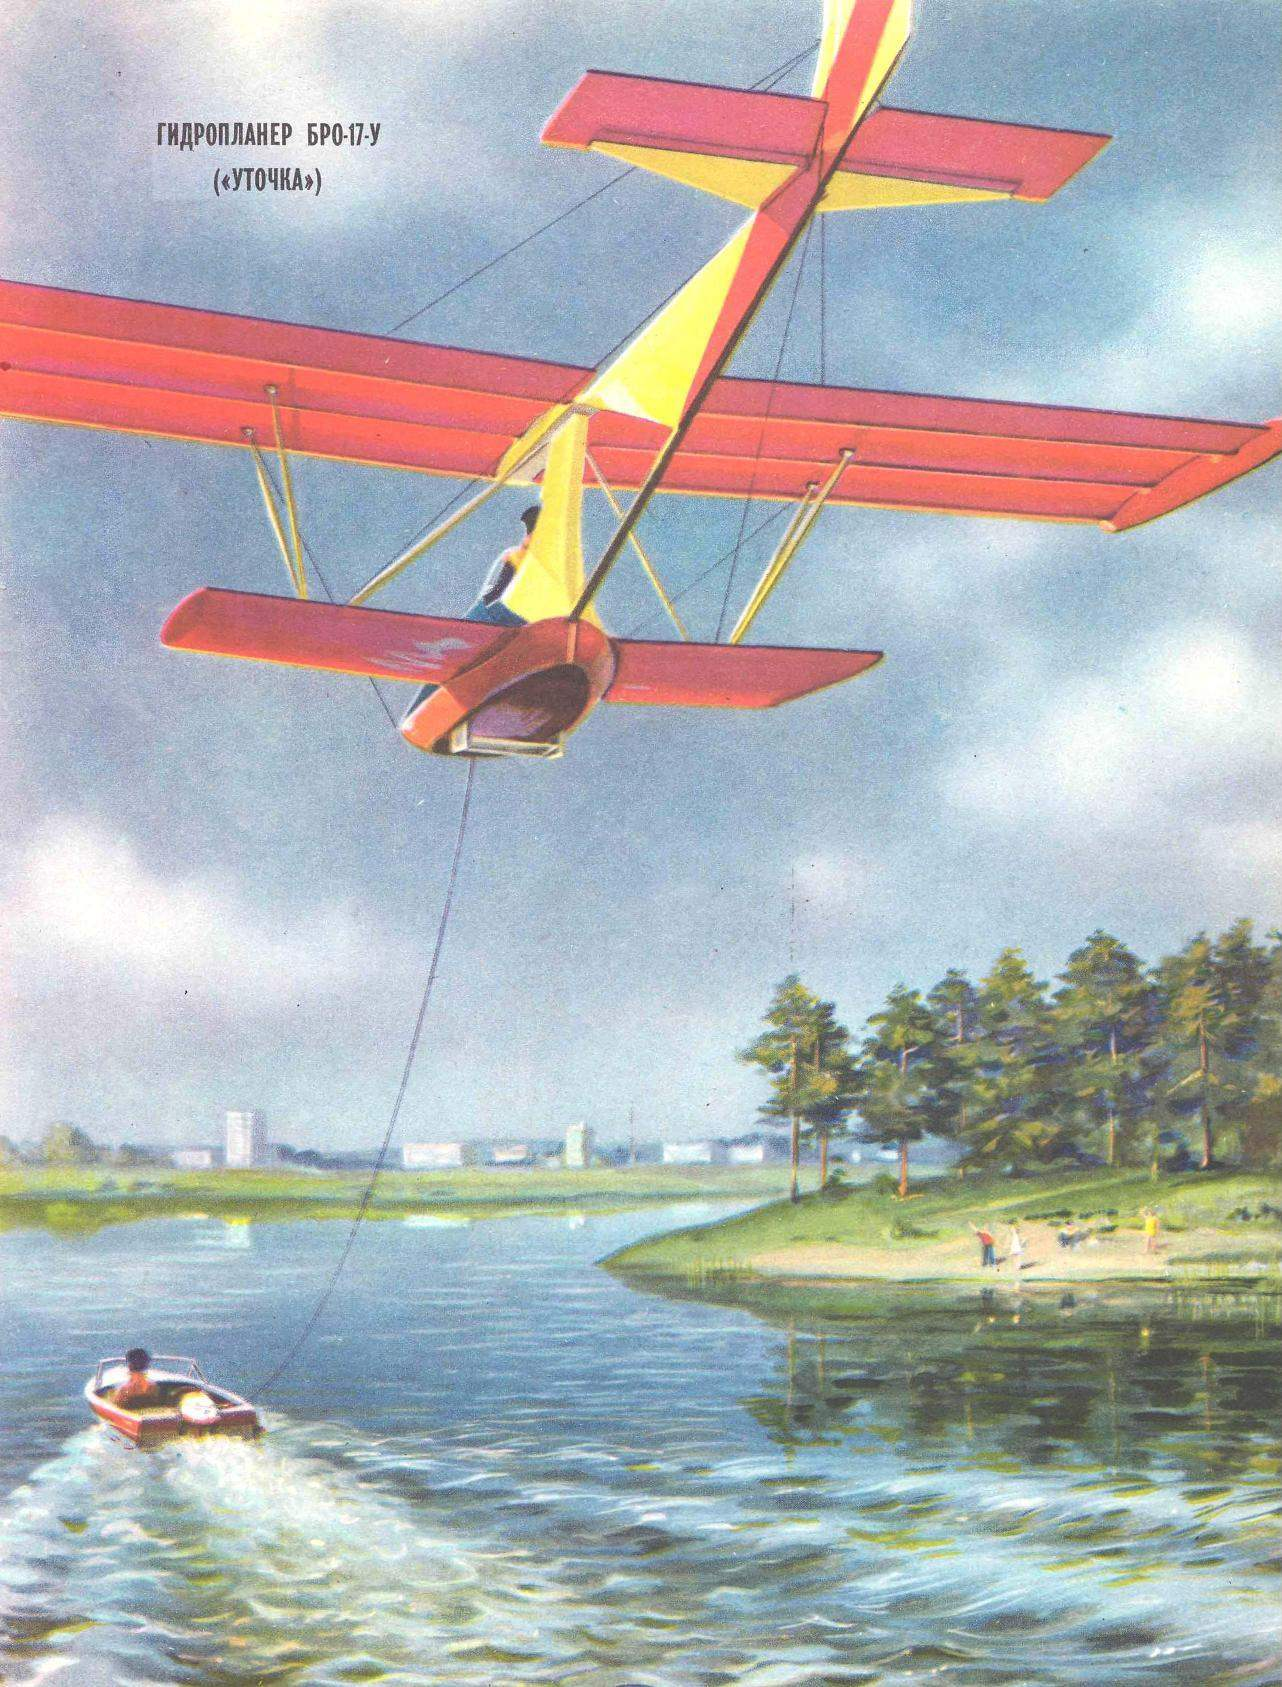 THE GLIDER TAKES OFF FROM THE WATER